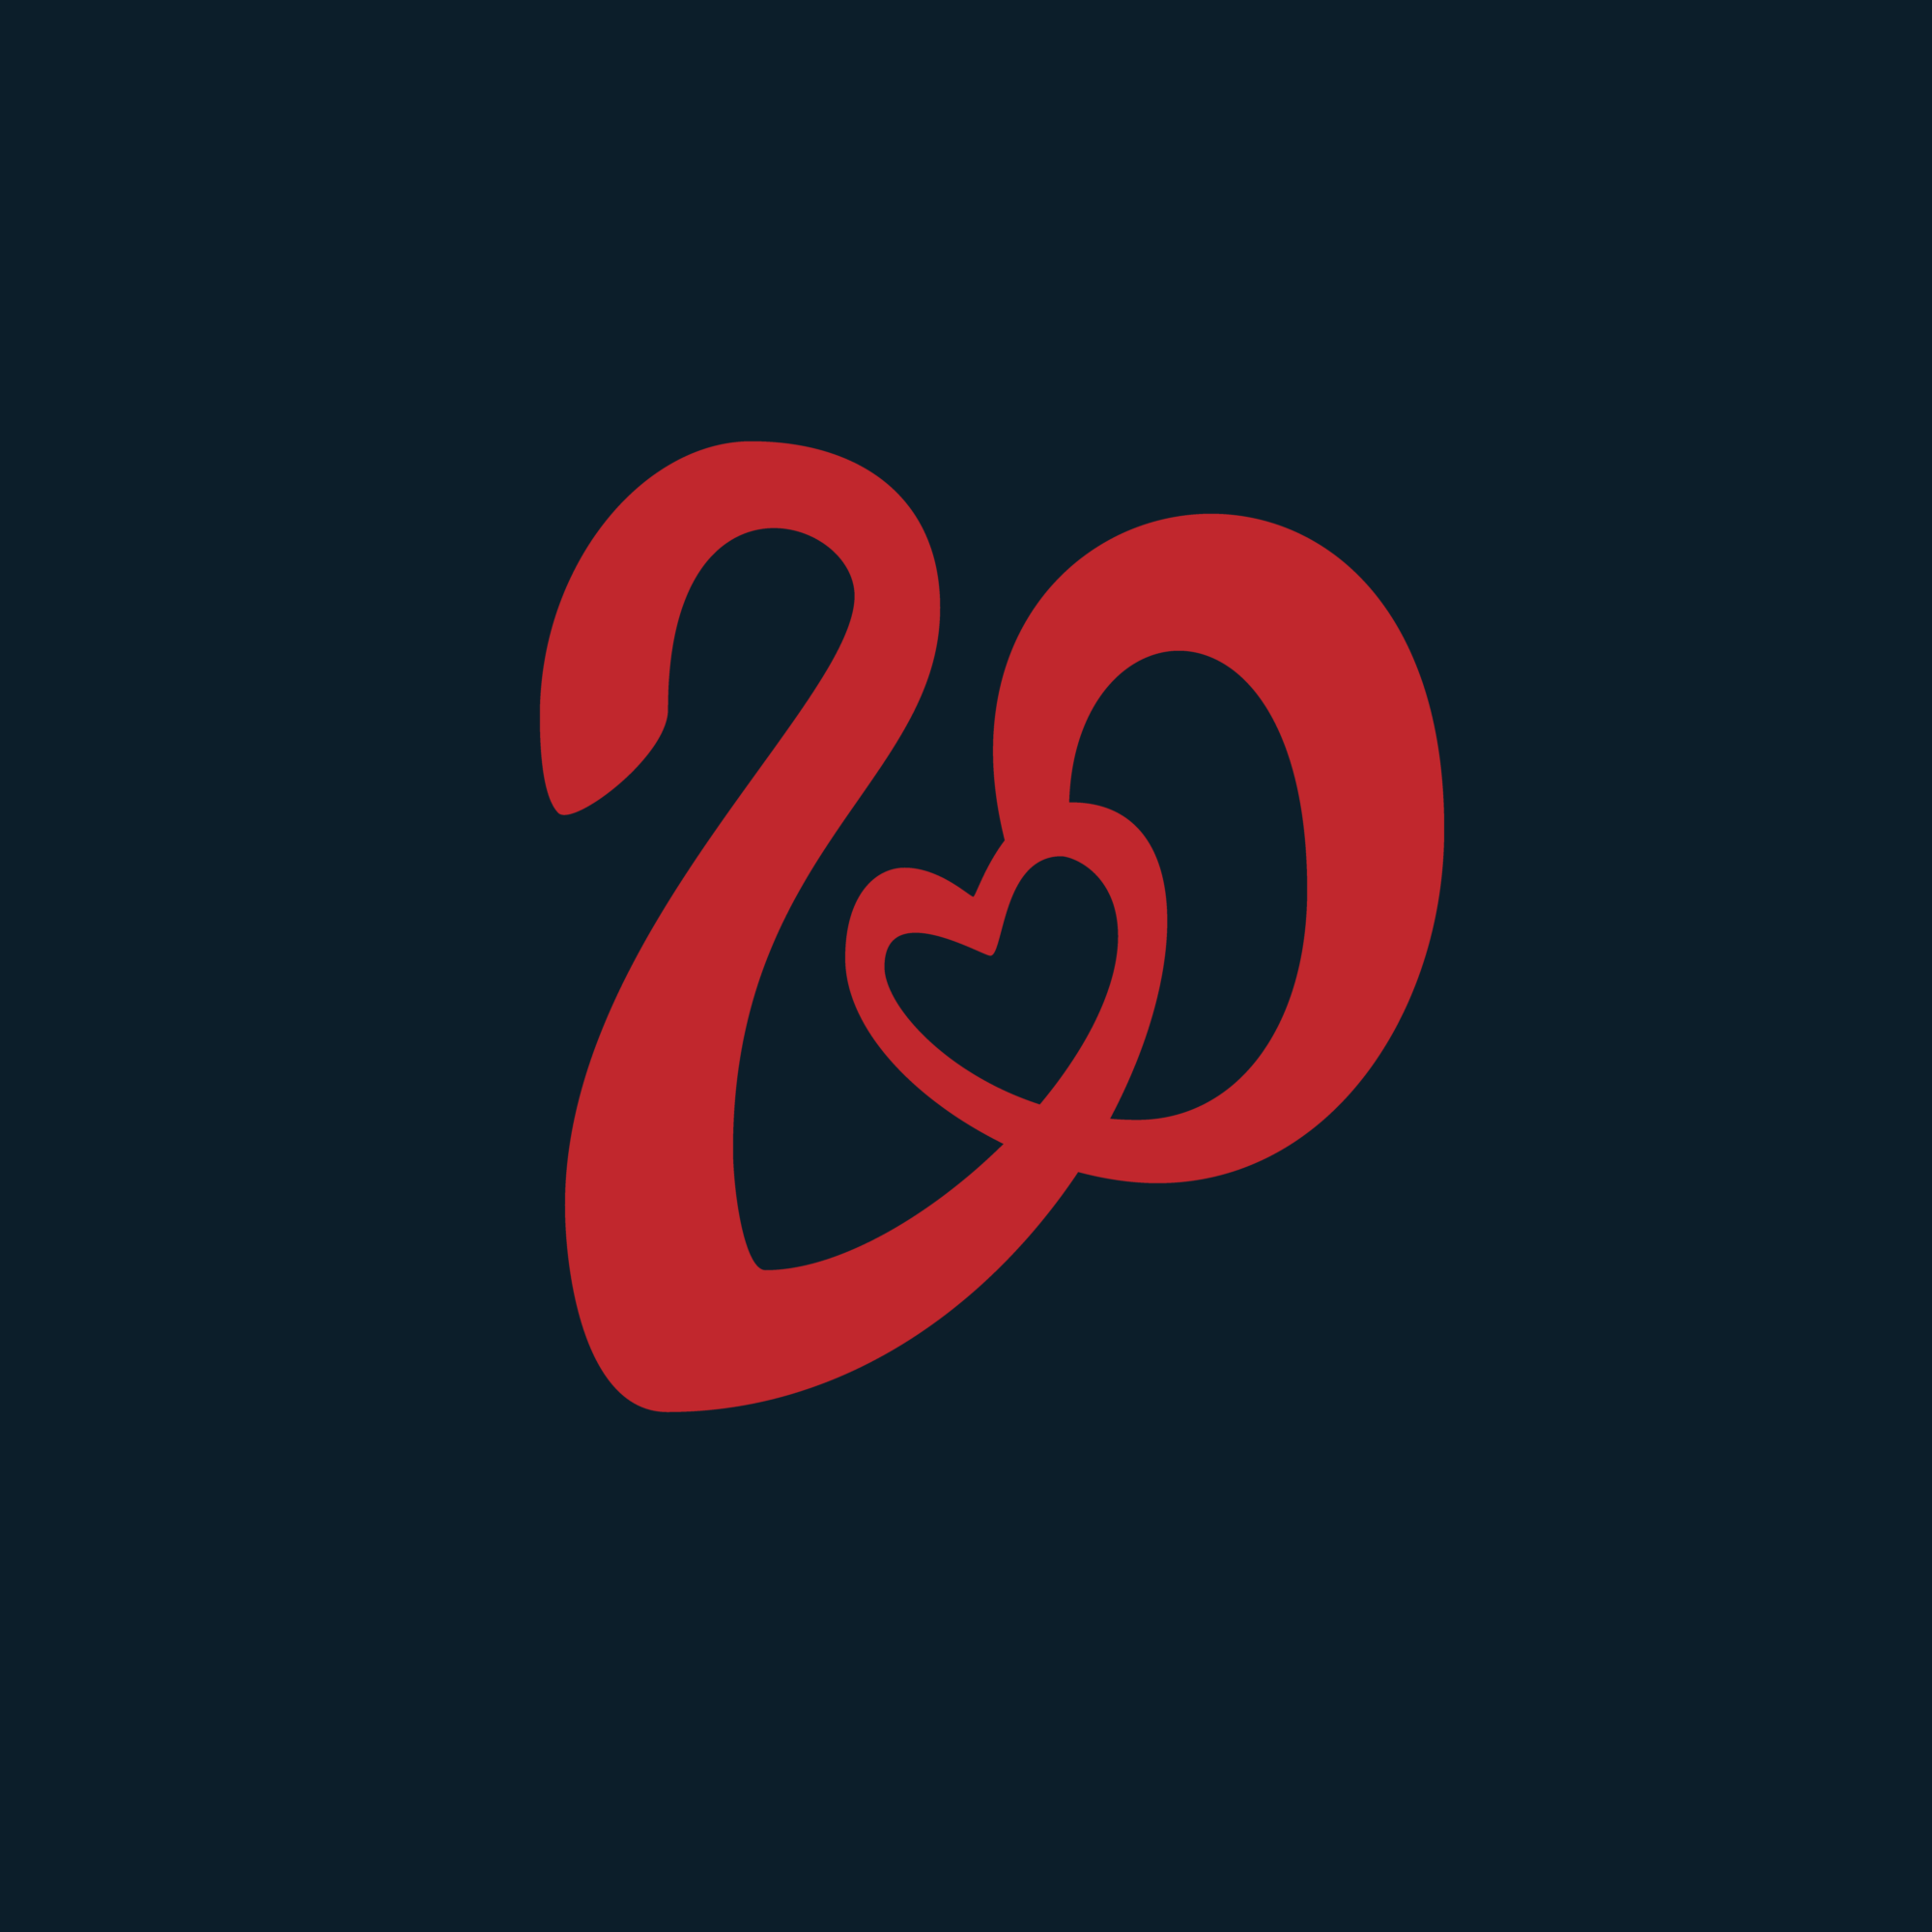 lettering-20-2x